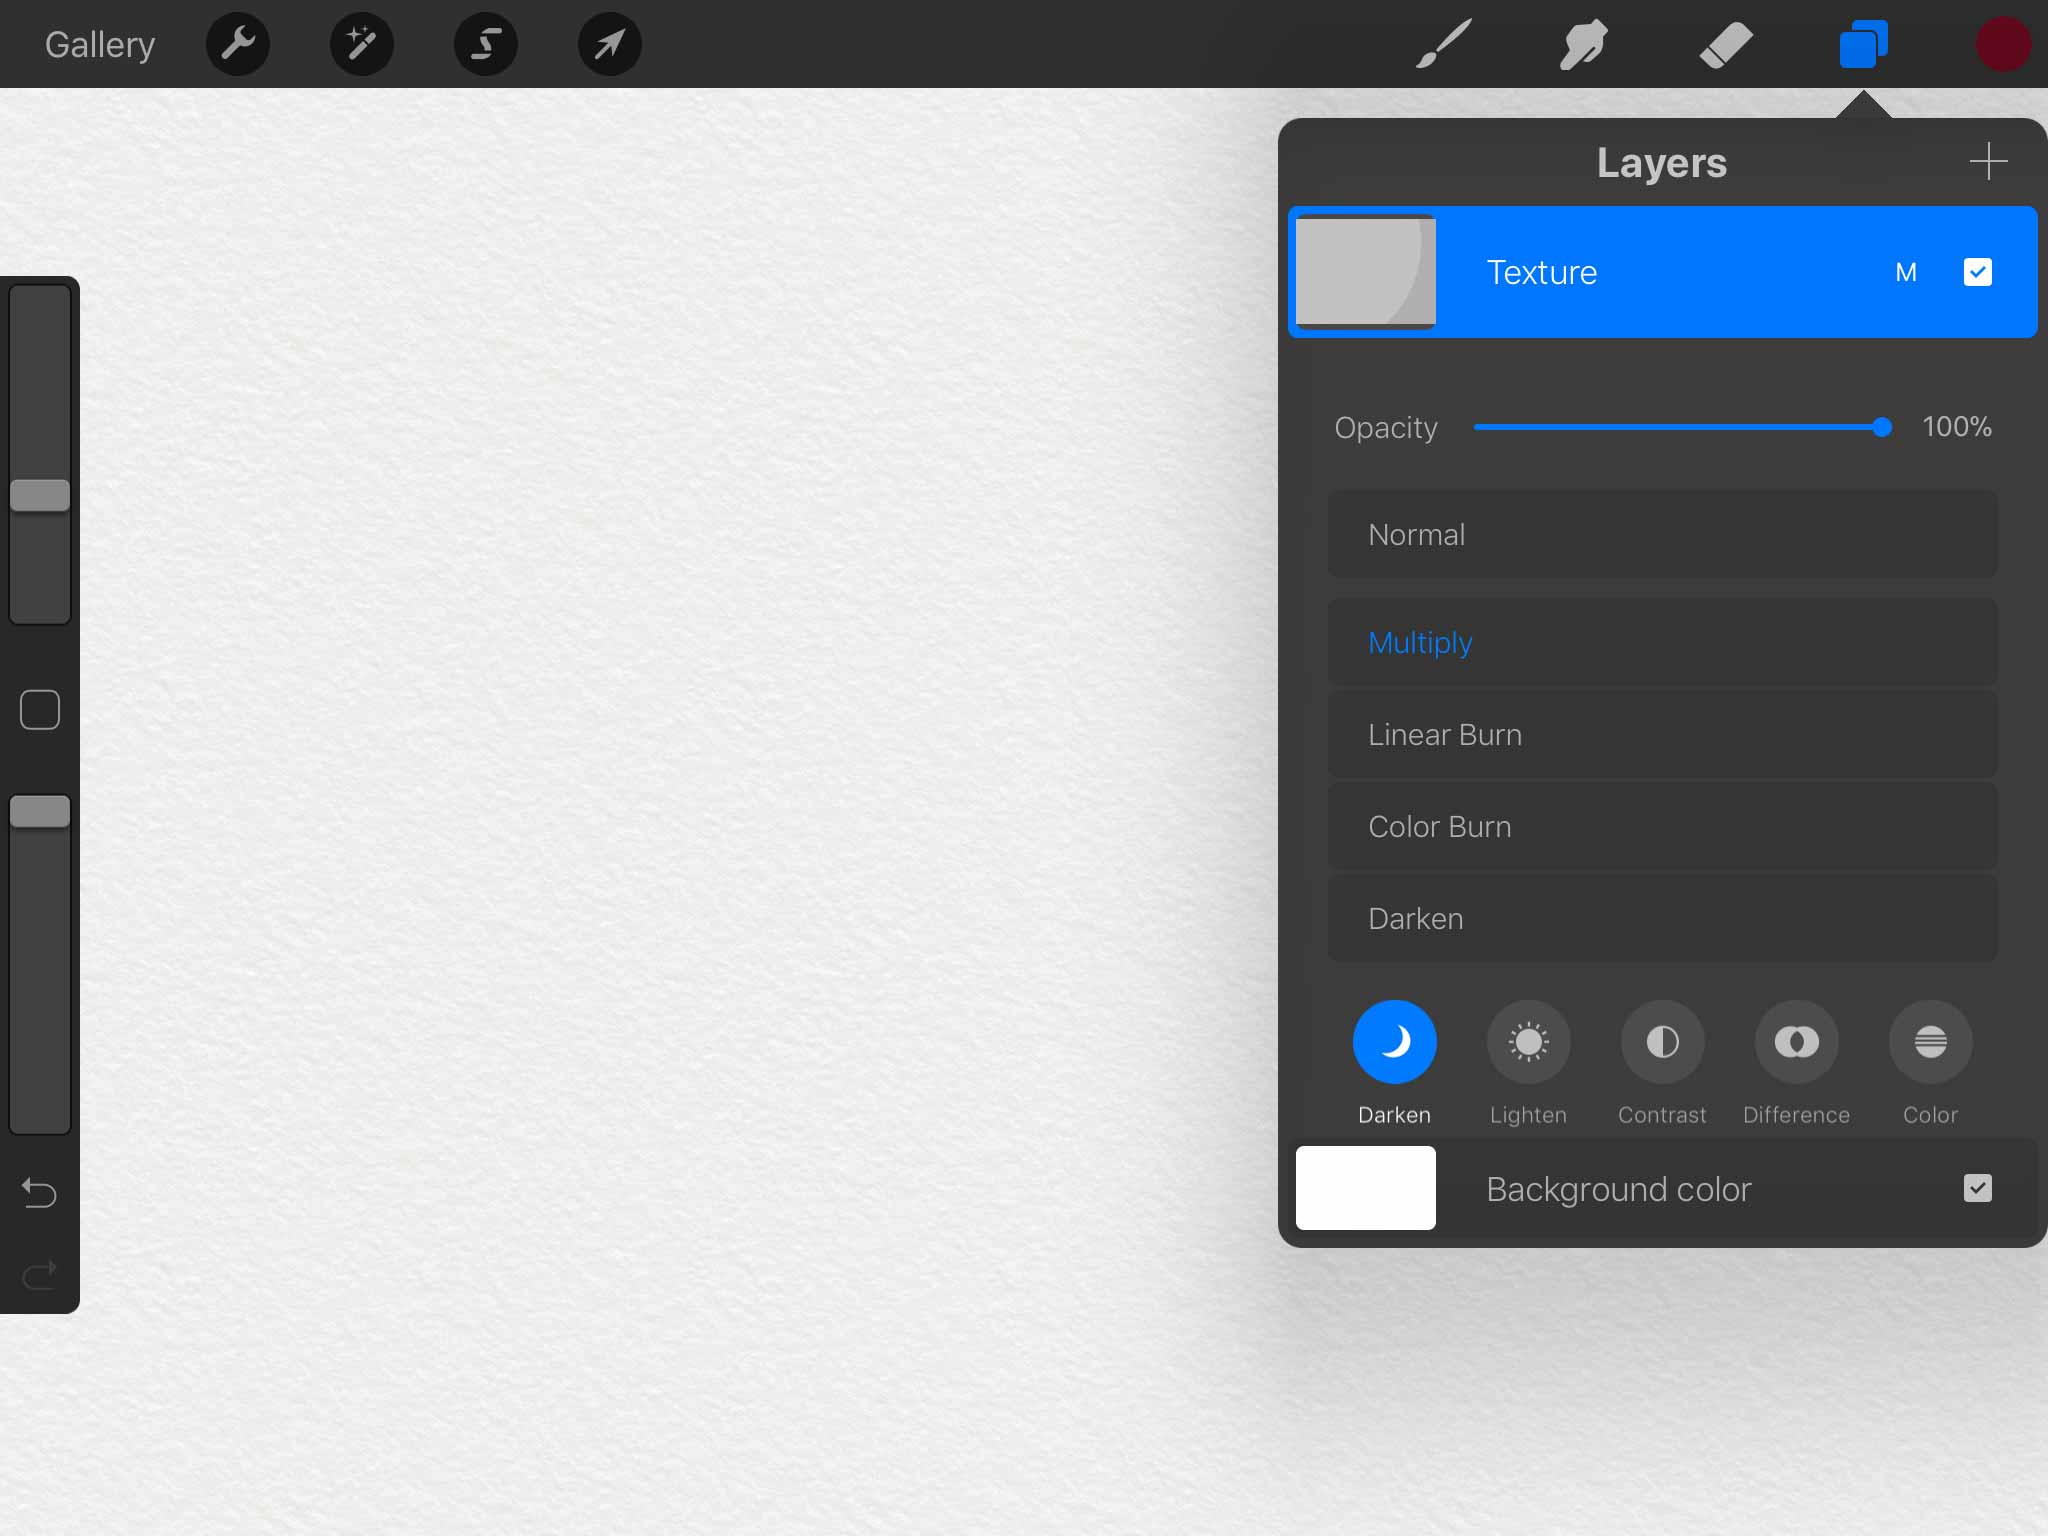 Screenshot of Procreate for iPad app's layers palette showing a watercolor paper texture layer added above a white background layer